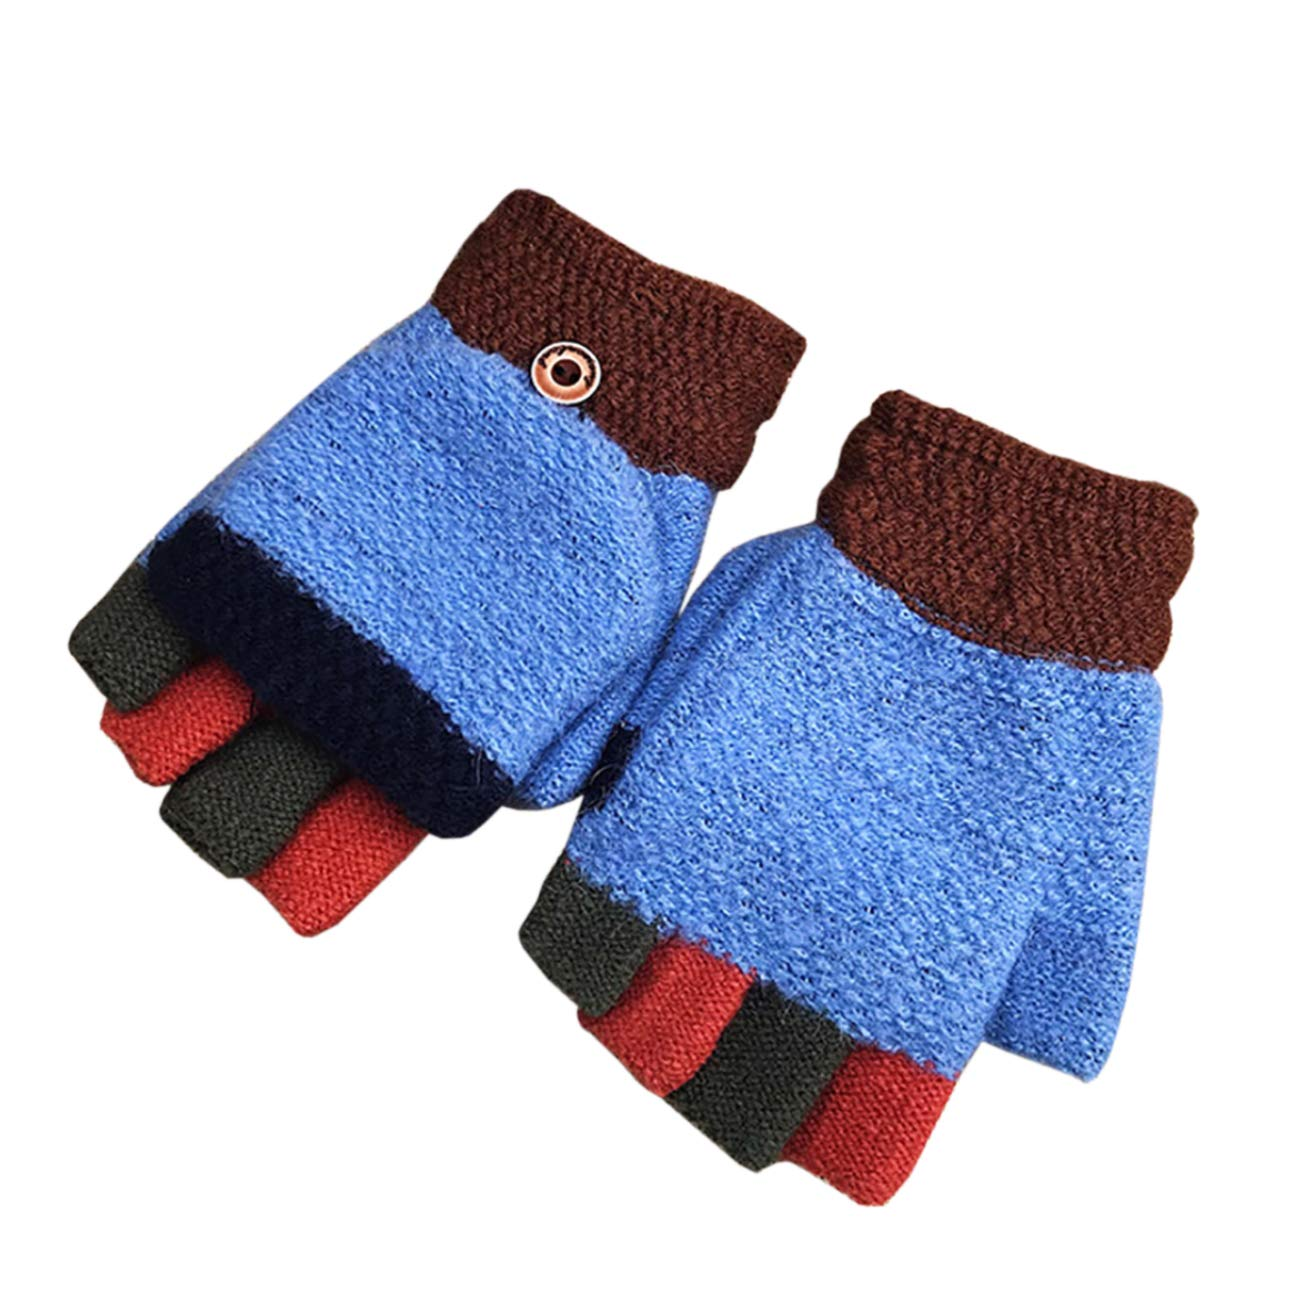 THEE Unisex Boys Girls Flip Top Gloves Warm Half Finger Stretchy Knit Gloves GFFPST113ag